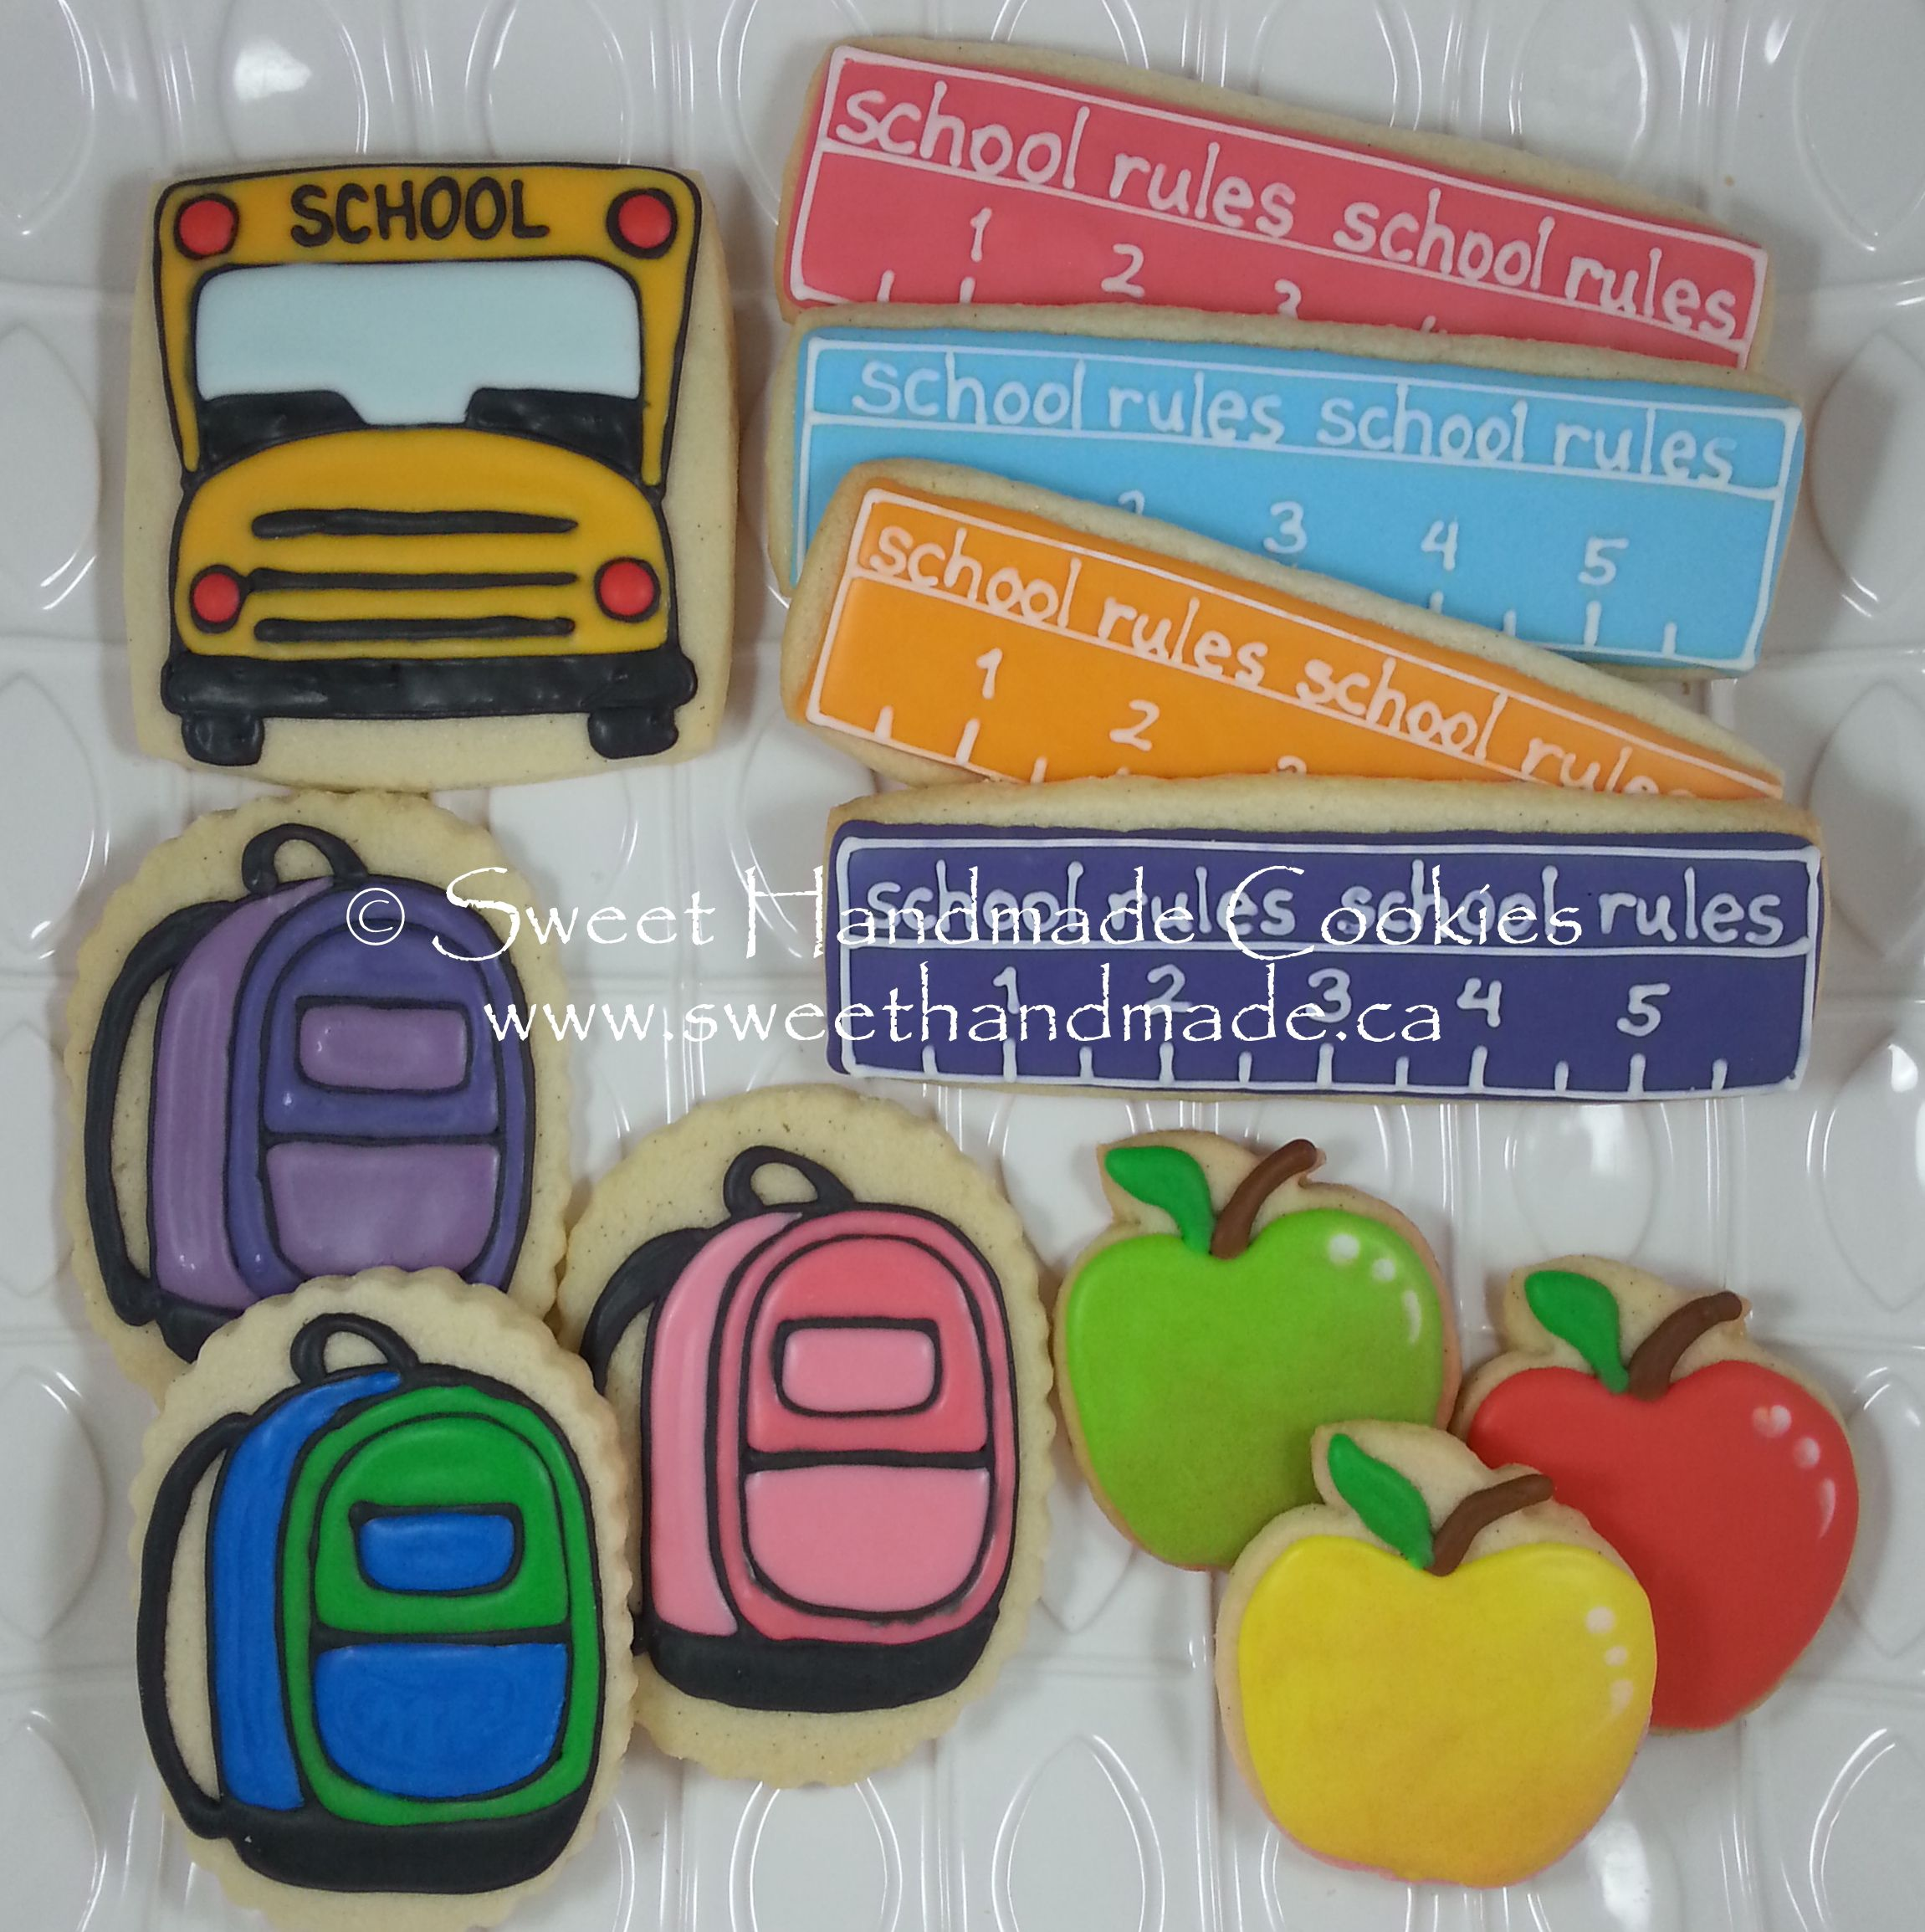 Sweet Handmade Cookies - back-to-school school bus backpack ruler apple cookies